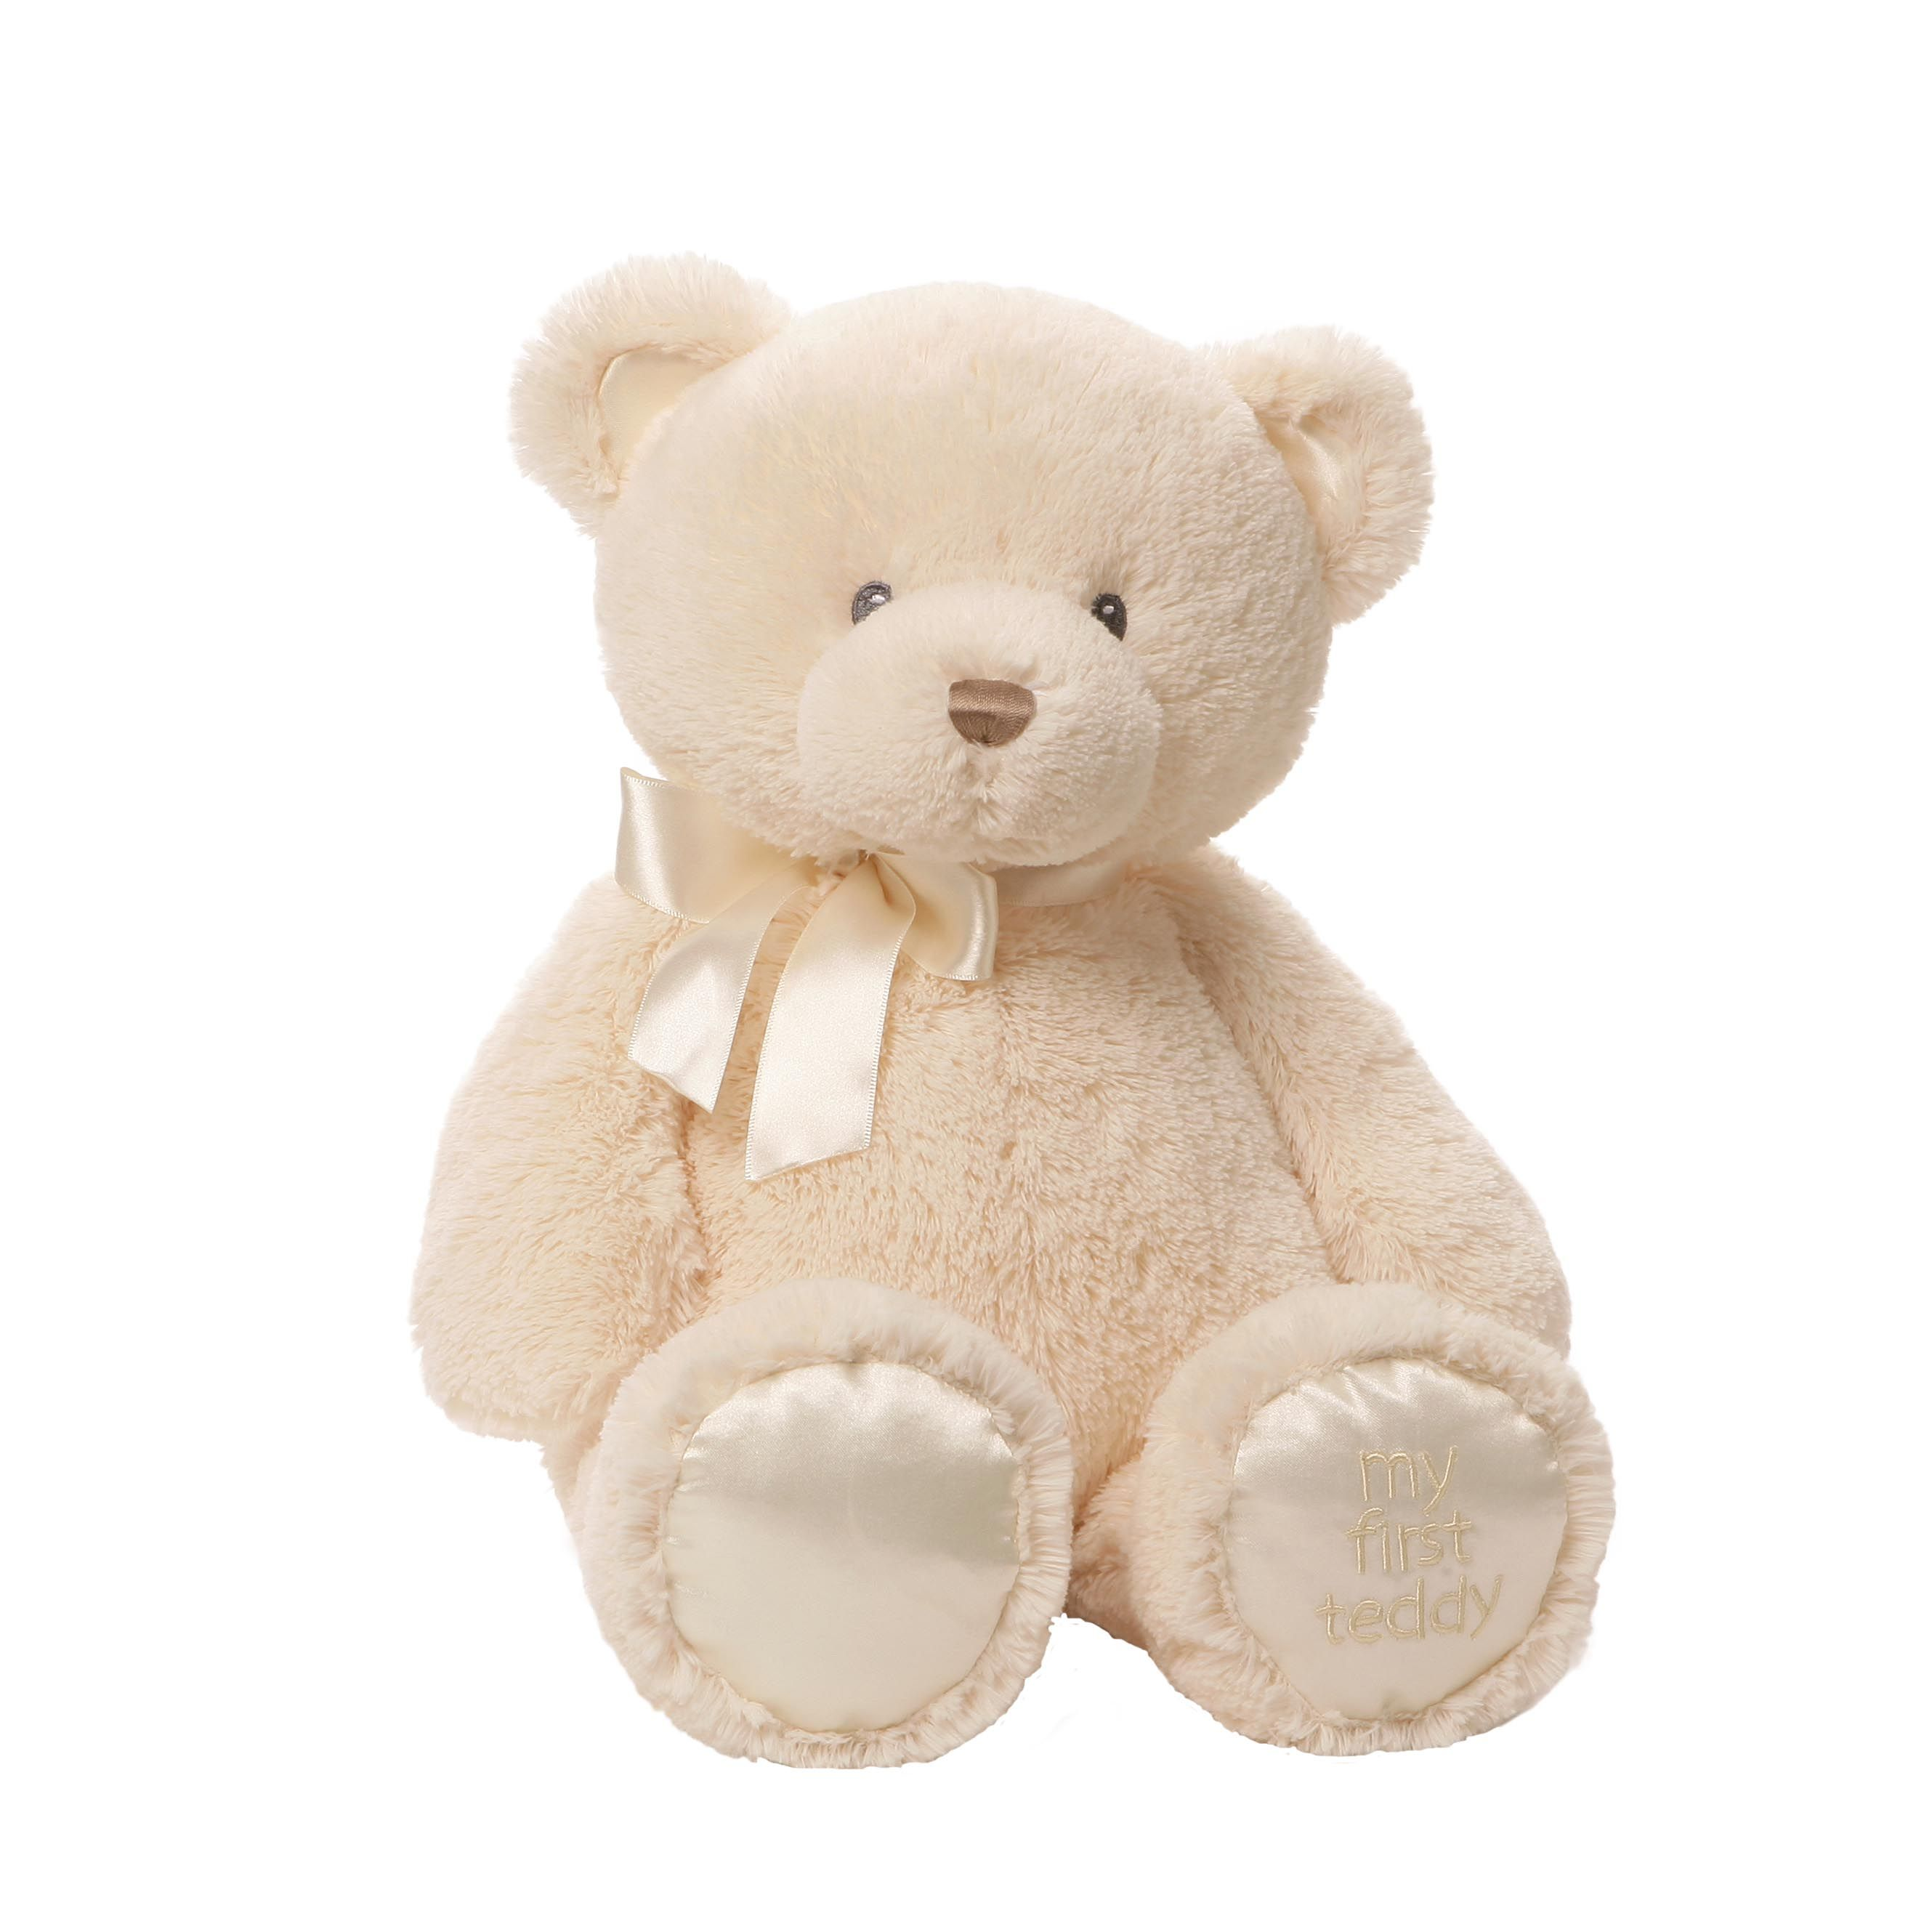 My First Teddy (Cream) is the perfect first gift for a